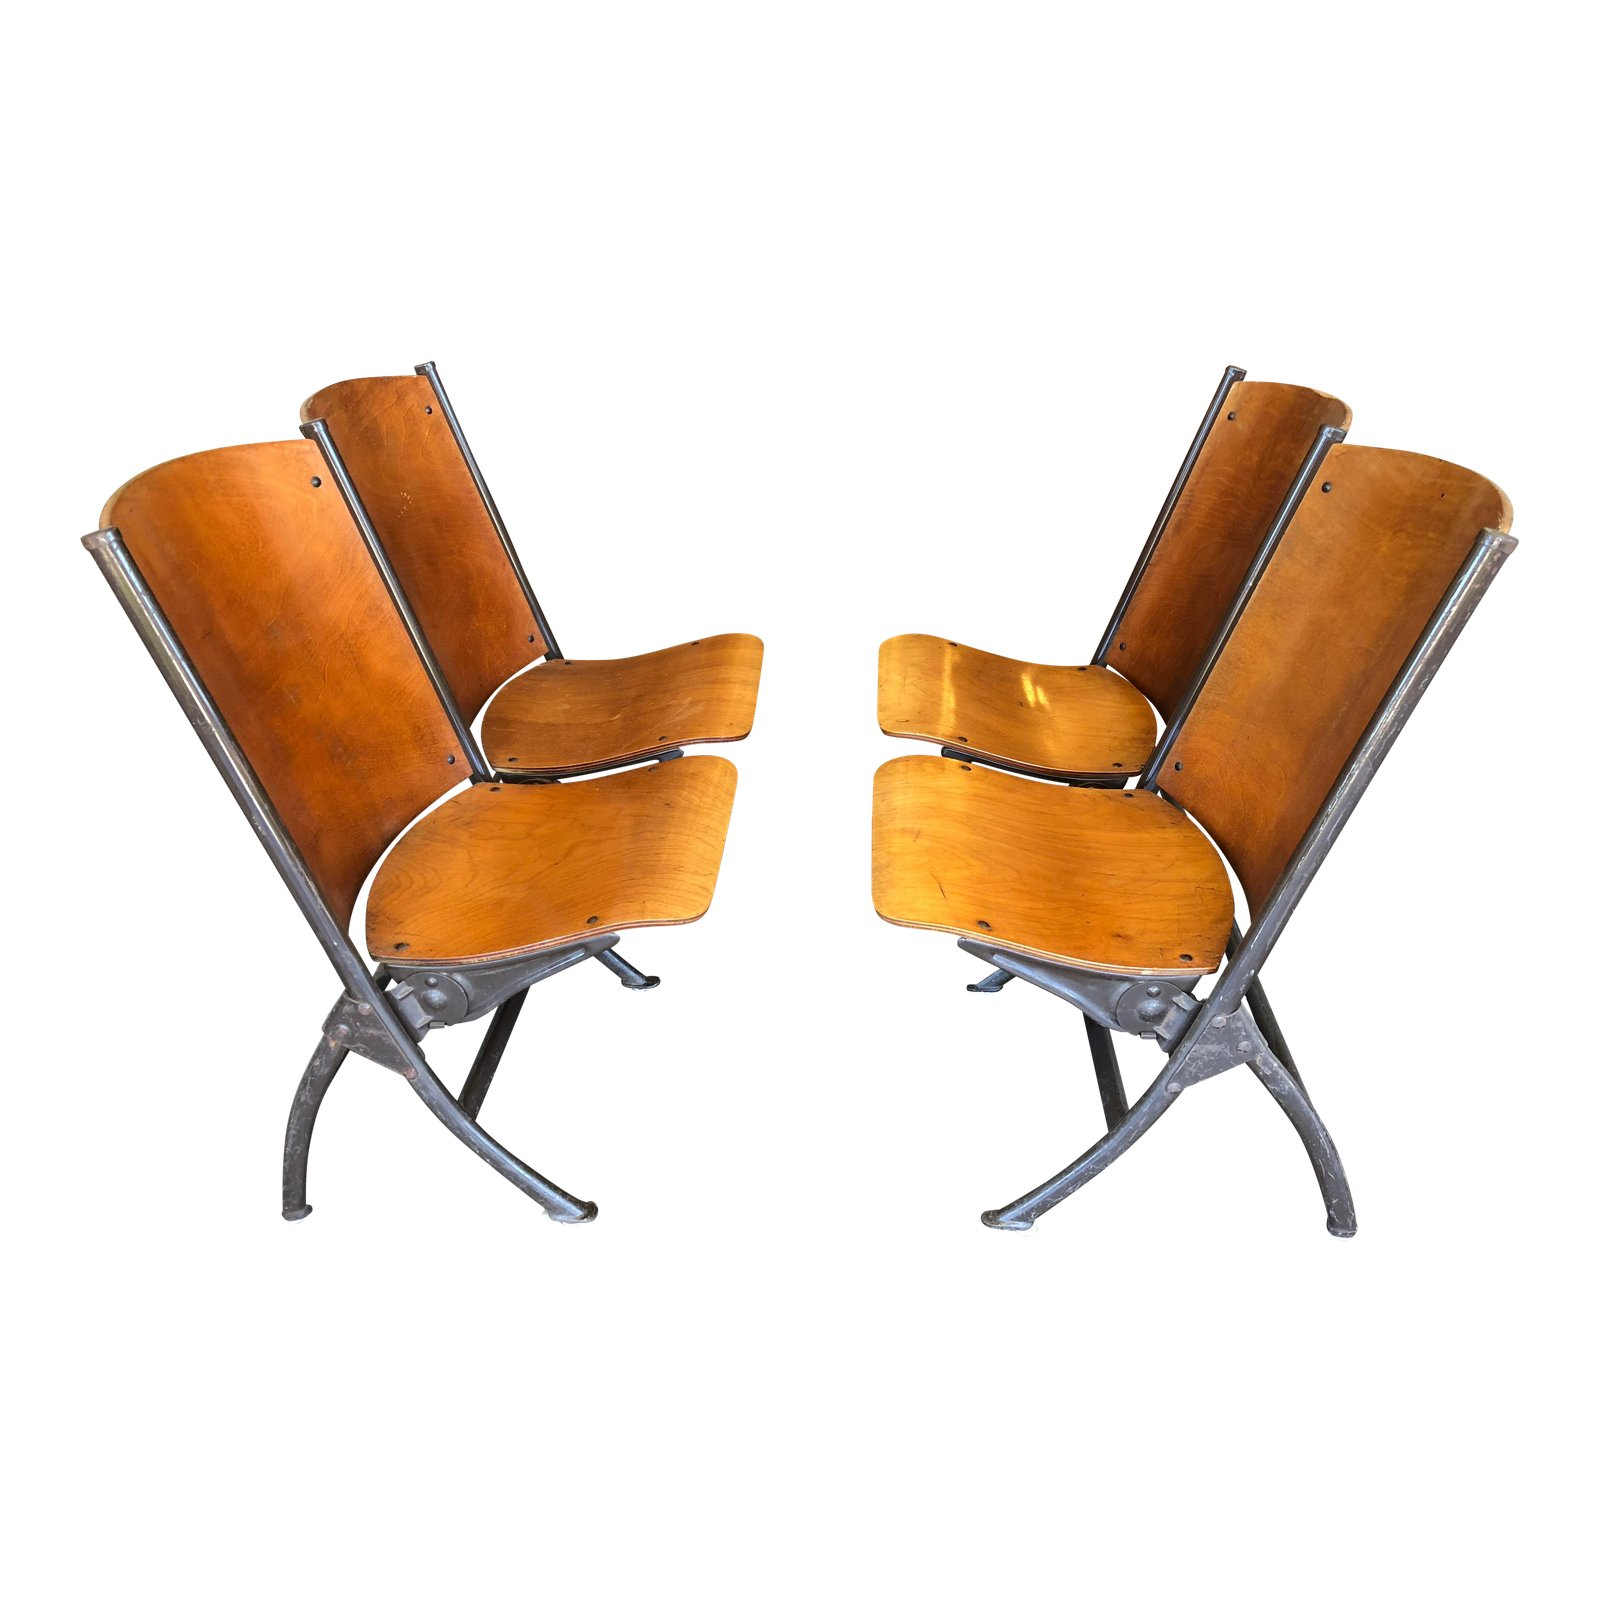 Miraculous Mid Century Sf Mariners Union Twin Theater Seat Bench A Caraccident5 Cool Chair Designs And Ideas Caraccident5Info